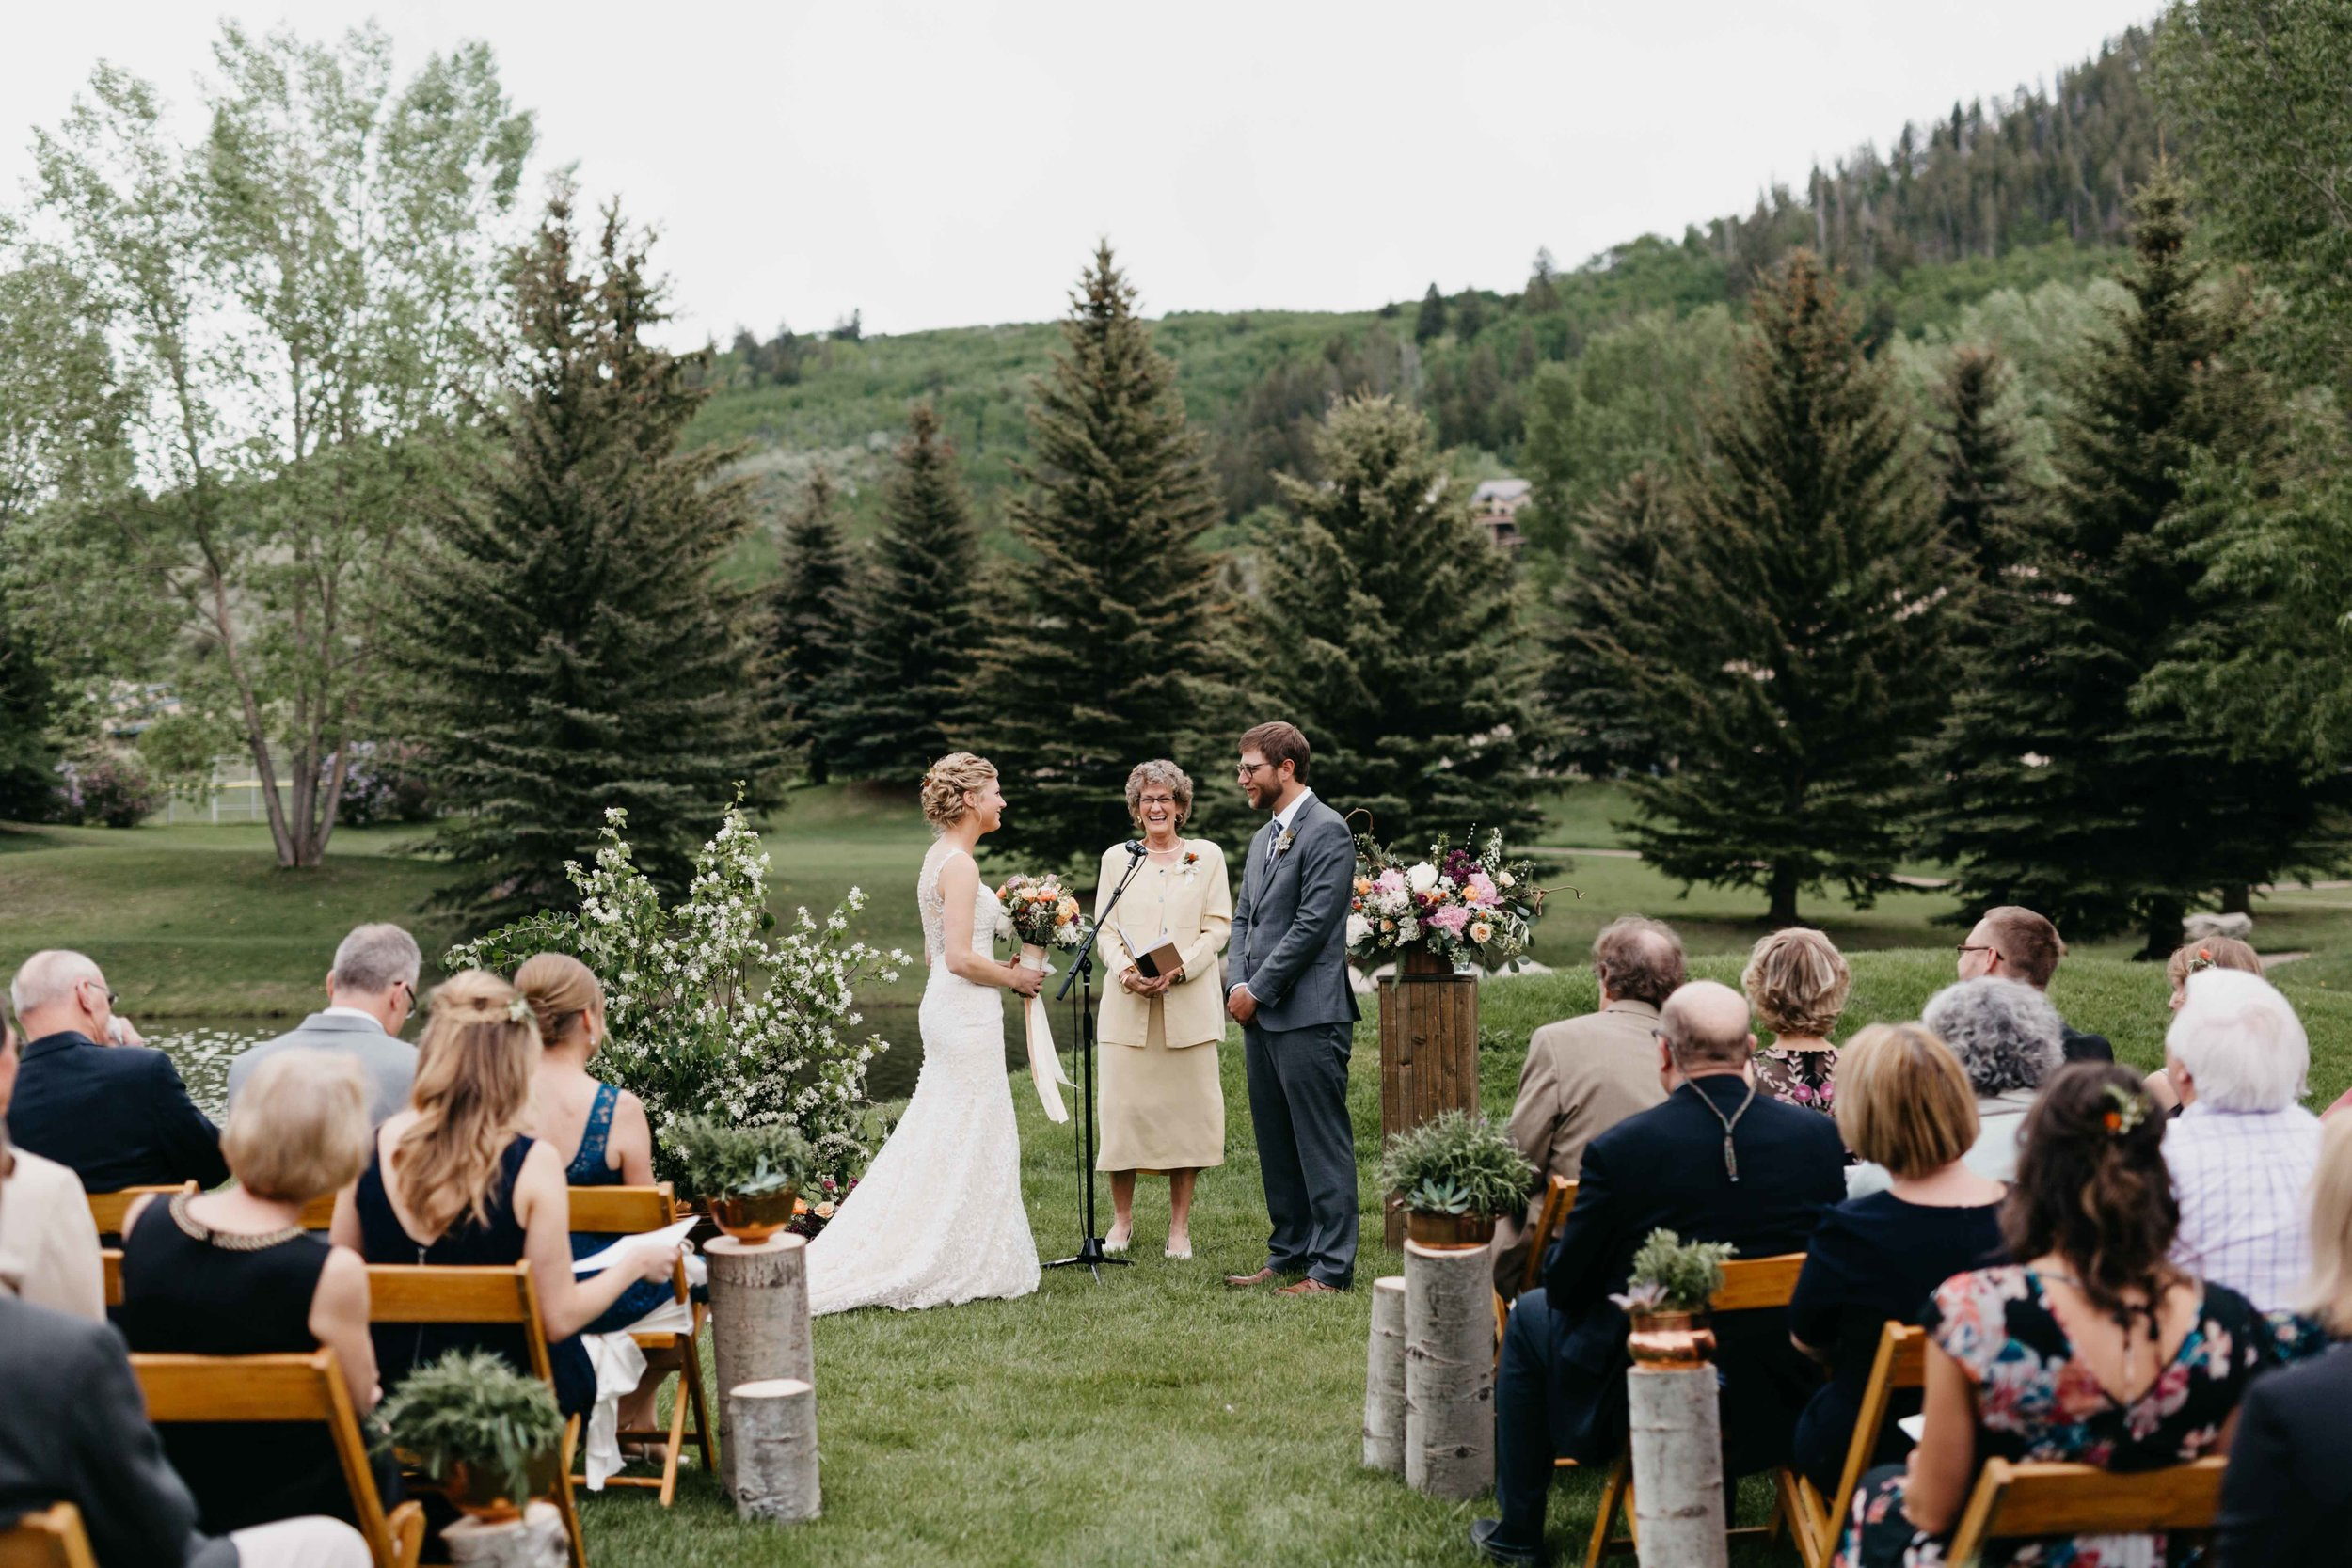 Colorado-Wedding-Photographer-54.jpg